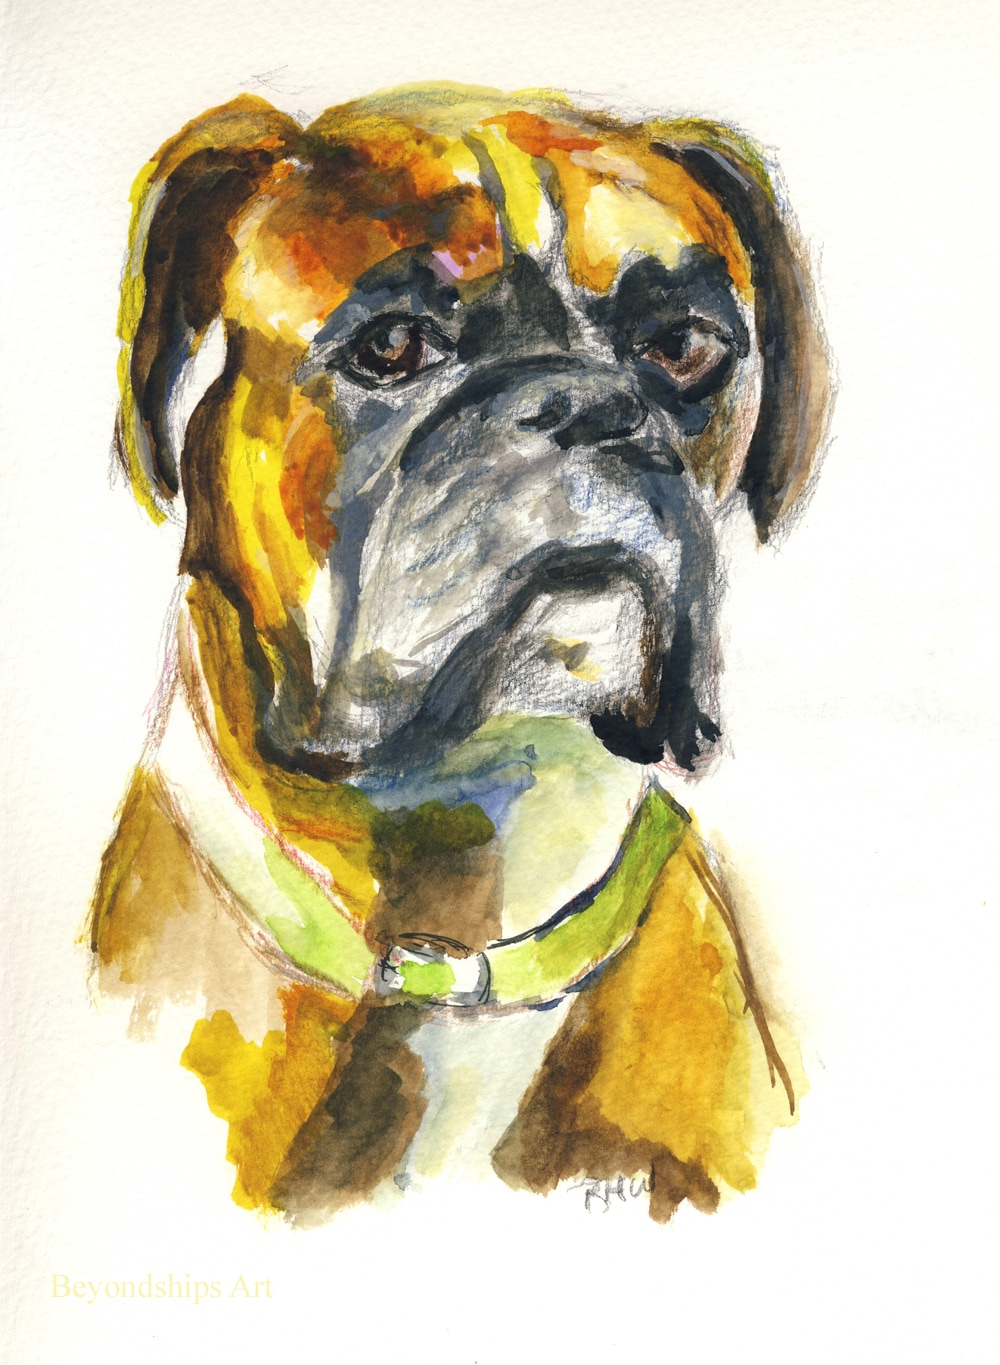 Painting of a dog by Rich Wagner